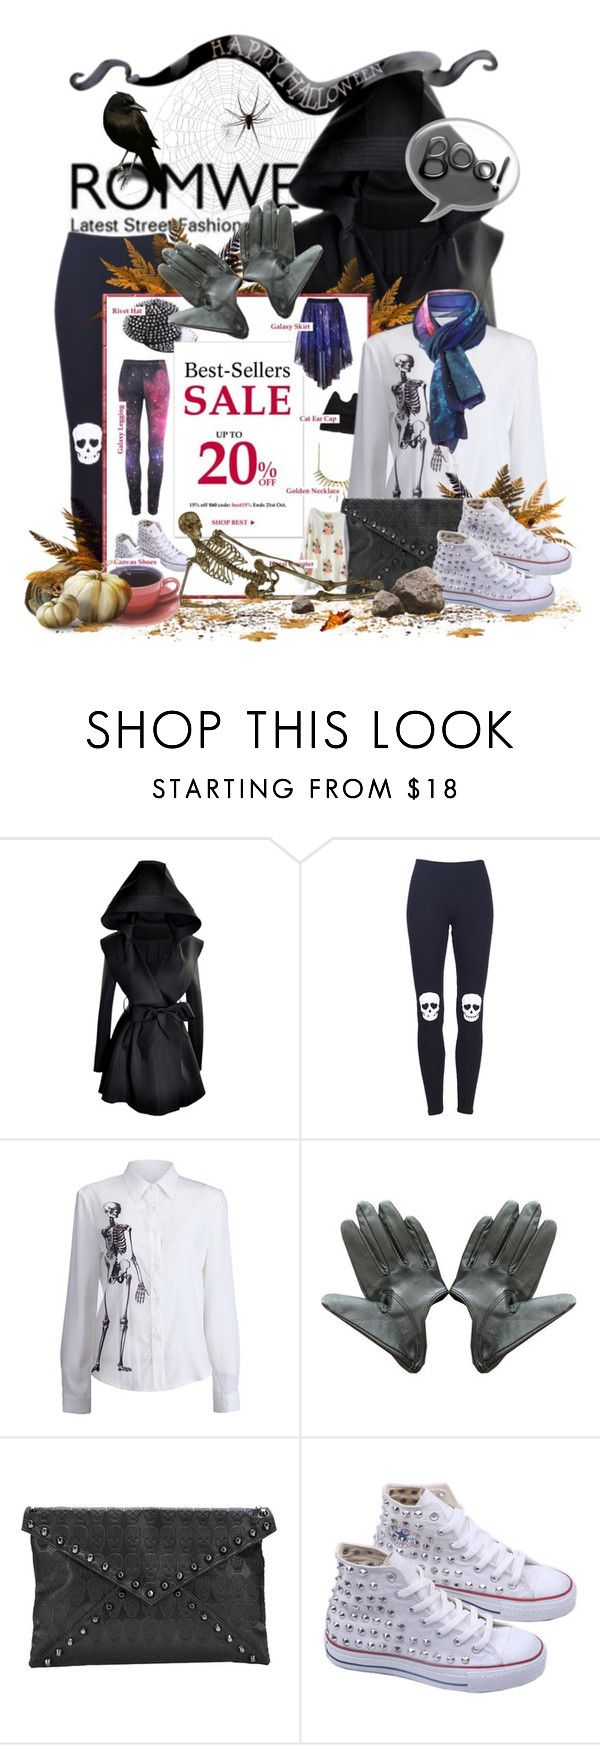 """Best-Sellers Sale..Up to 20%...Hurry Up!!"" by keti-lady ❤ liked on Polyvore featuring white canvas shoes, black, gloves, print scarf, leggings, cluthes, white, 2012, bone print and print shirt"